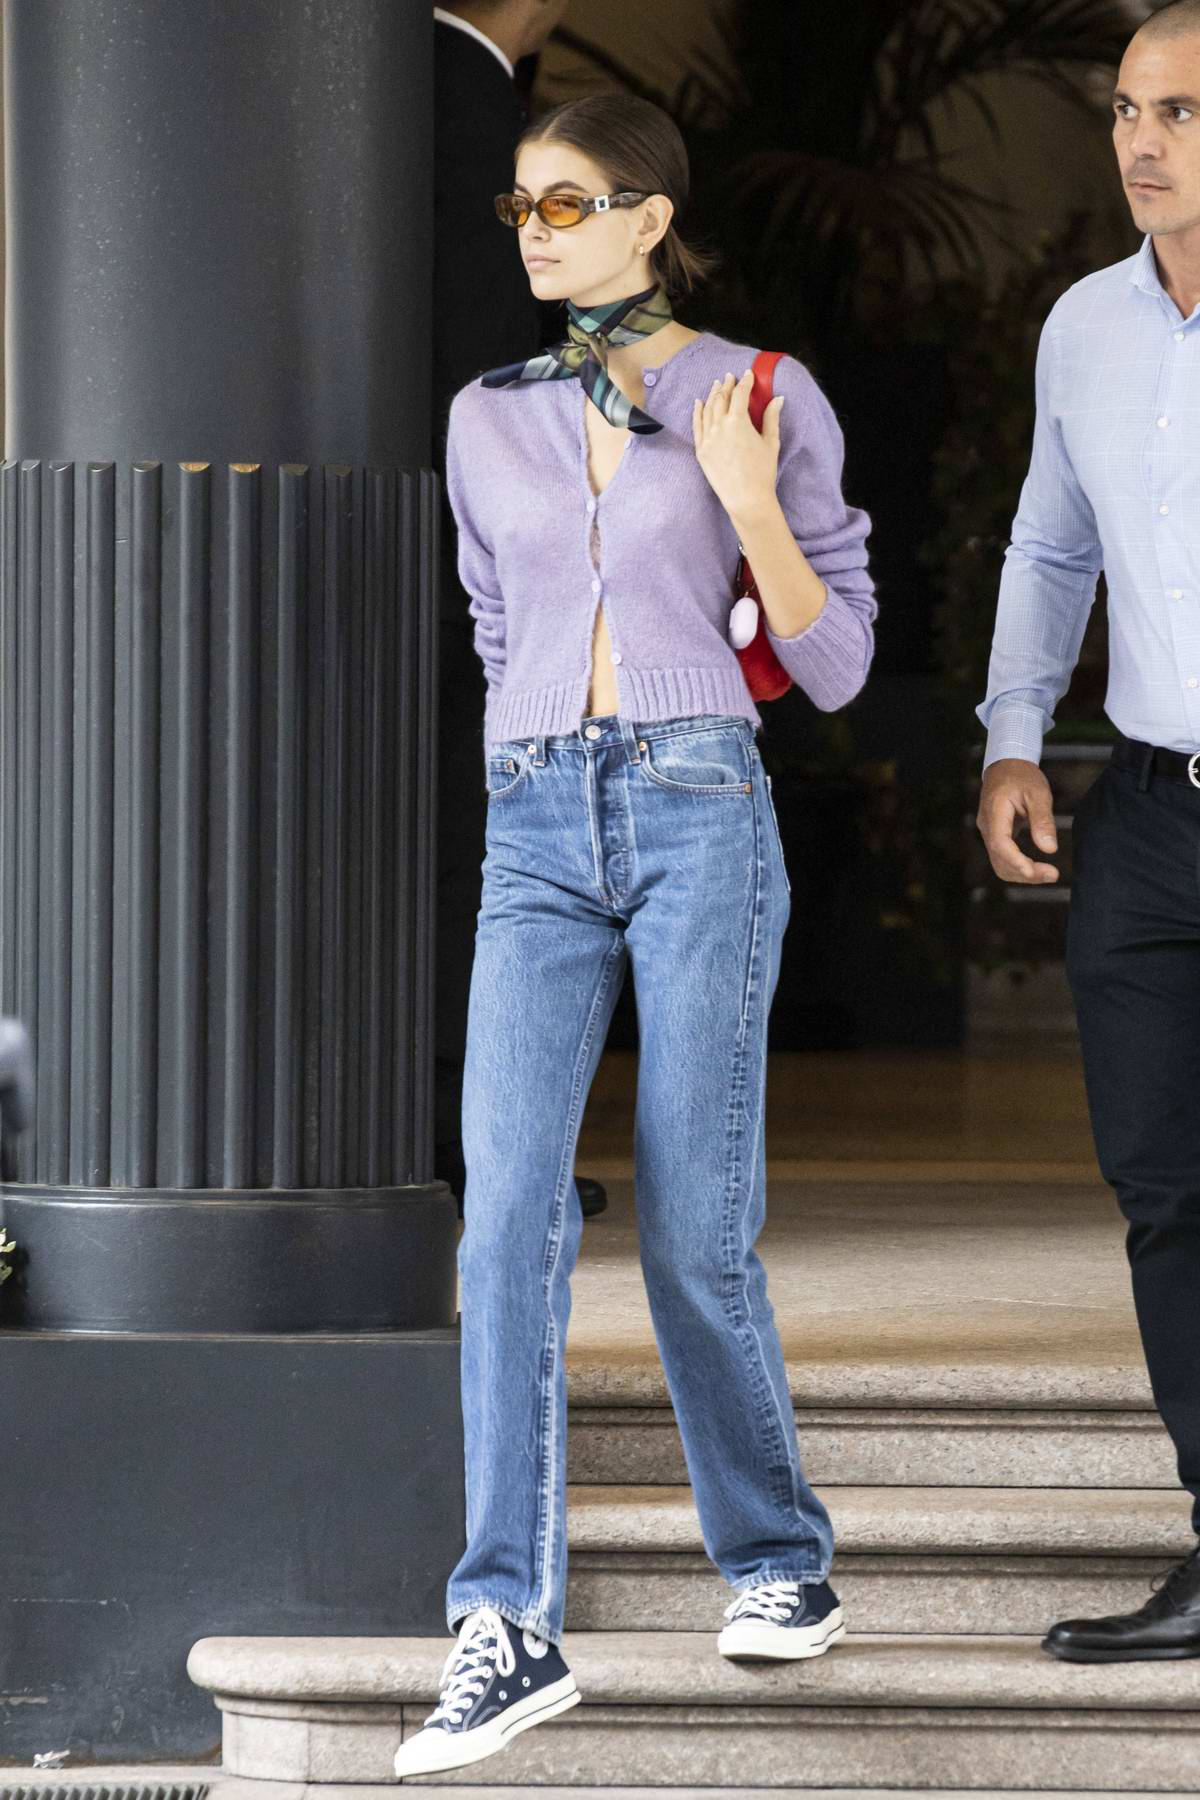 Kaia Gerber steps out in a cropped purple cardigan and jeans during Milan Fashion Week in Milan, Italy